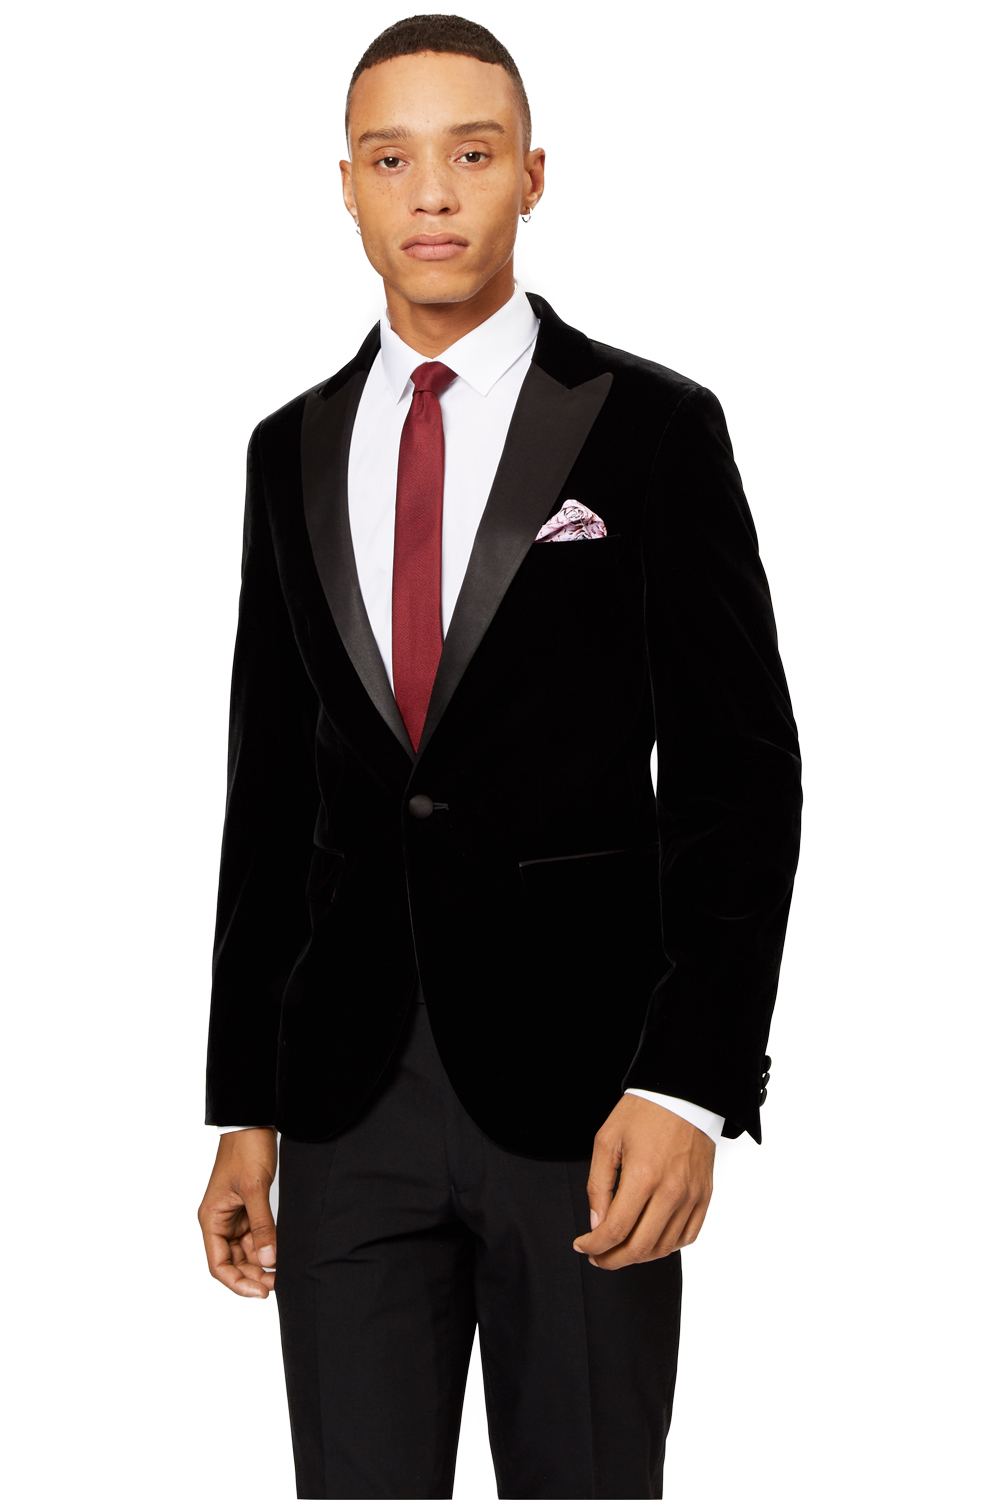 Velvet Suits 17 Colors $ 1 Button, 2 Button, 3 Button, Double Breasted and more, you can select any style from the product page, you can even select a waist coat to make your suit a 3 piece.5/5(1).